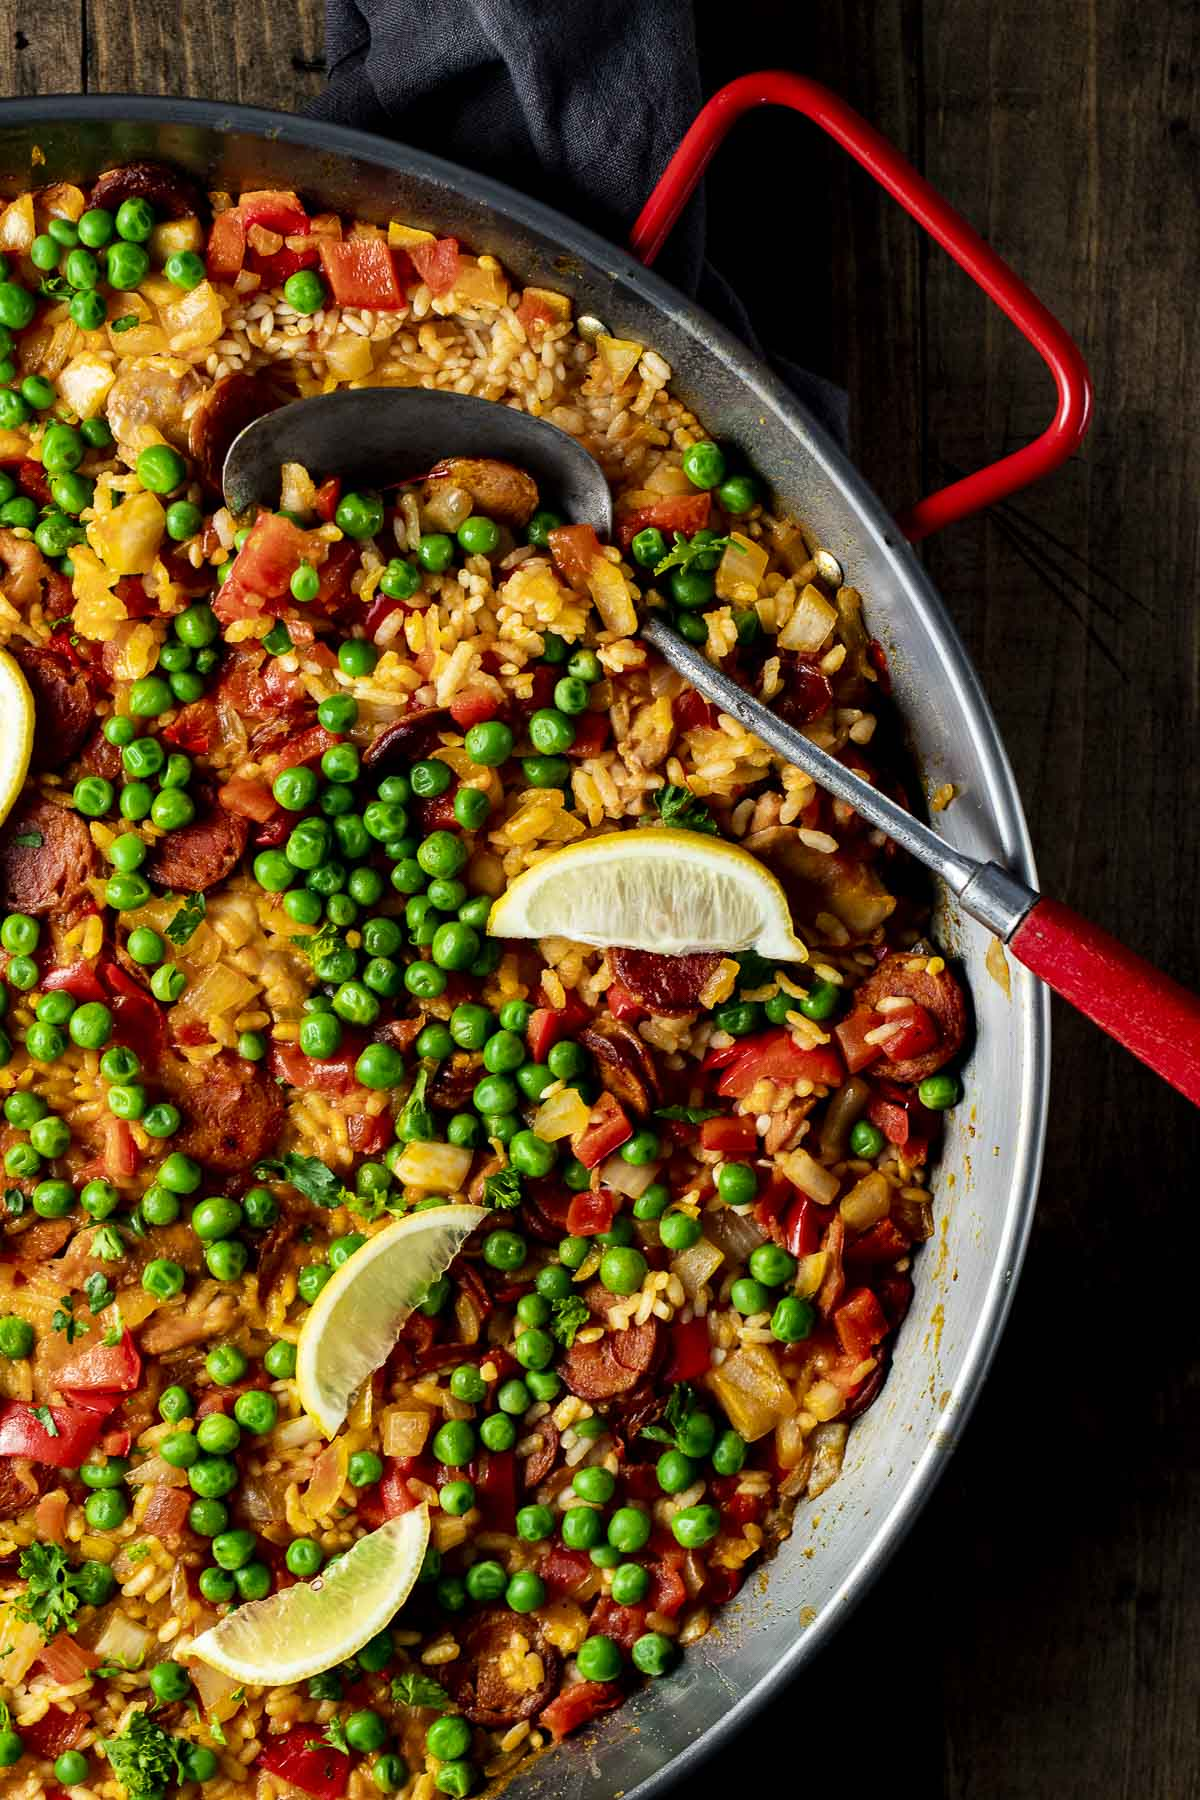 Overhead view of paella topped with lemon slices and peas.